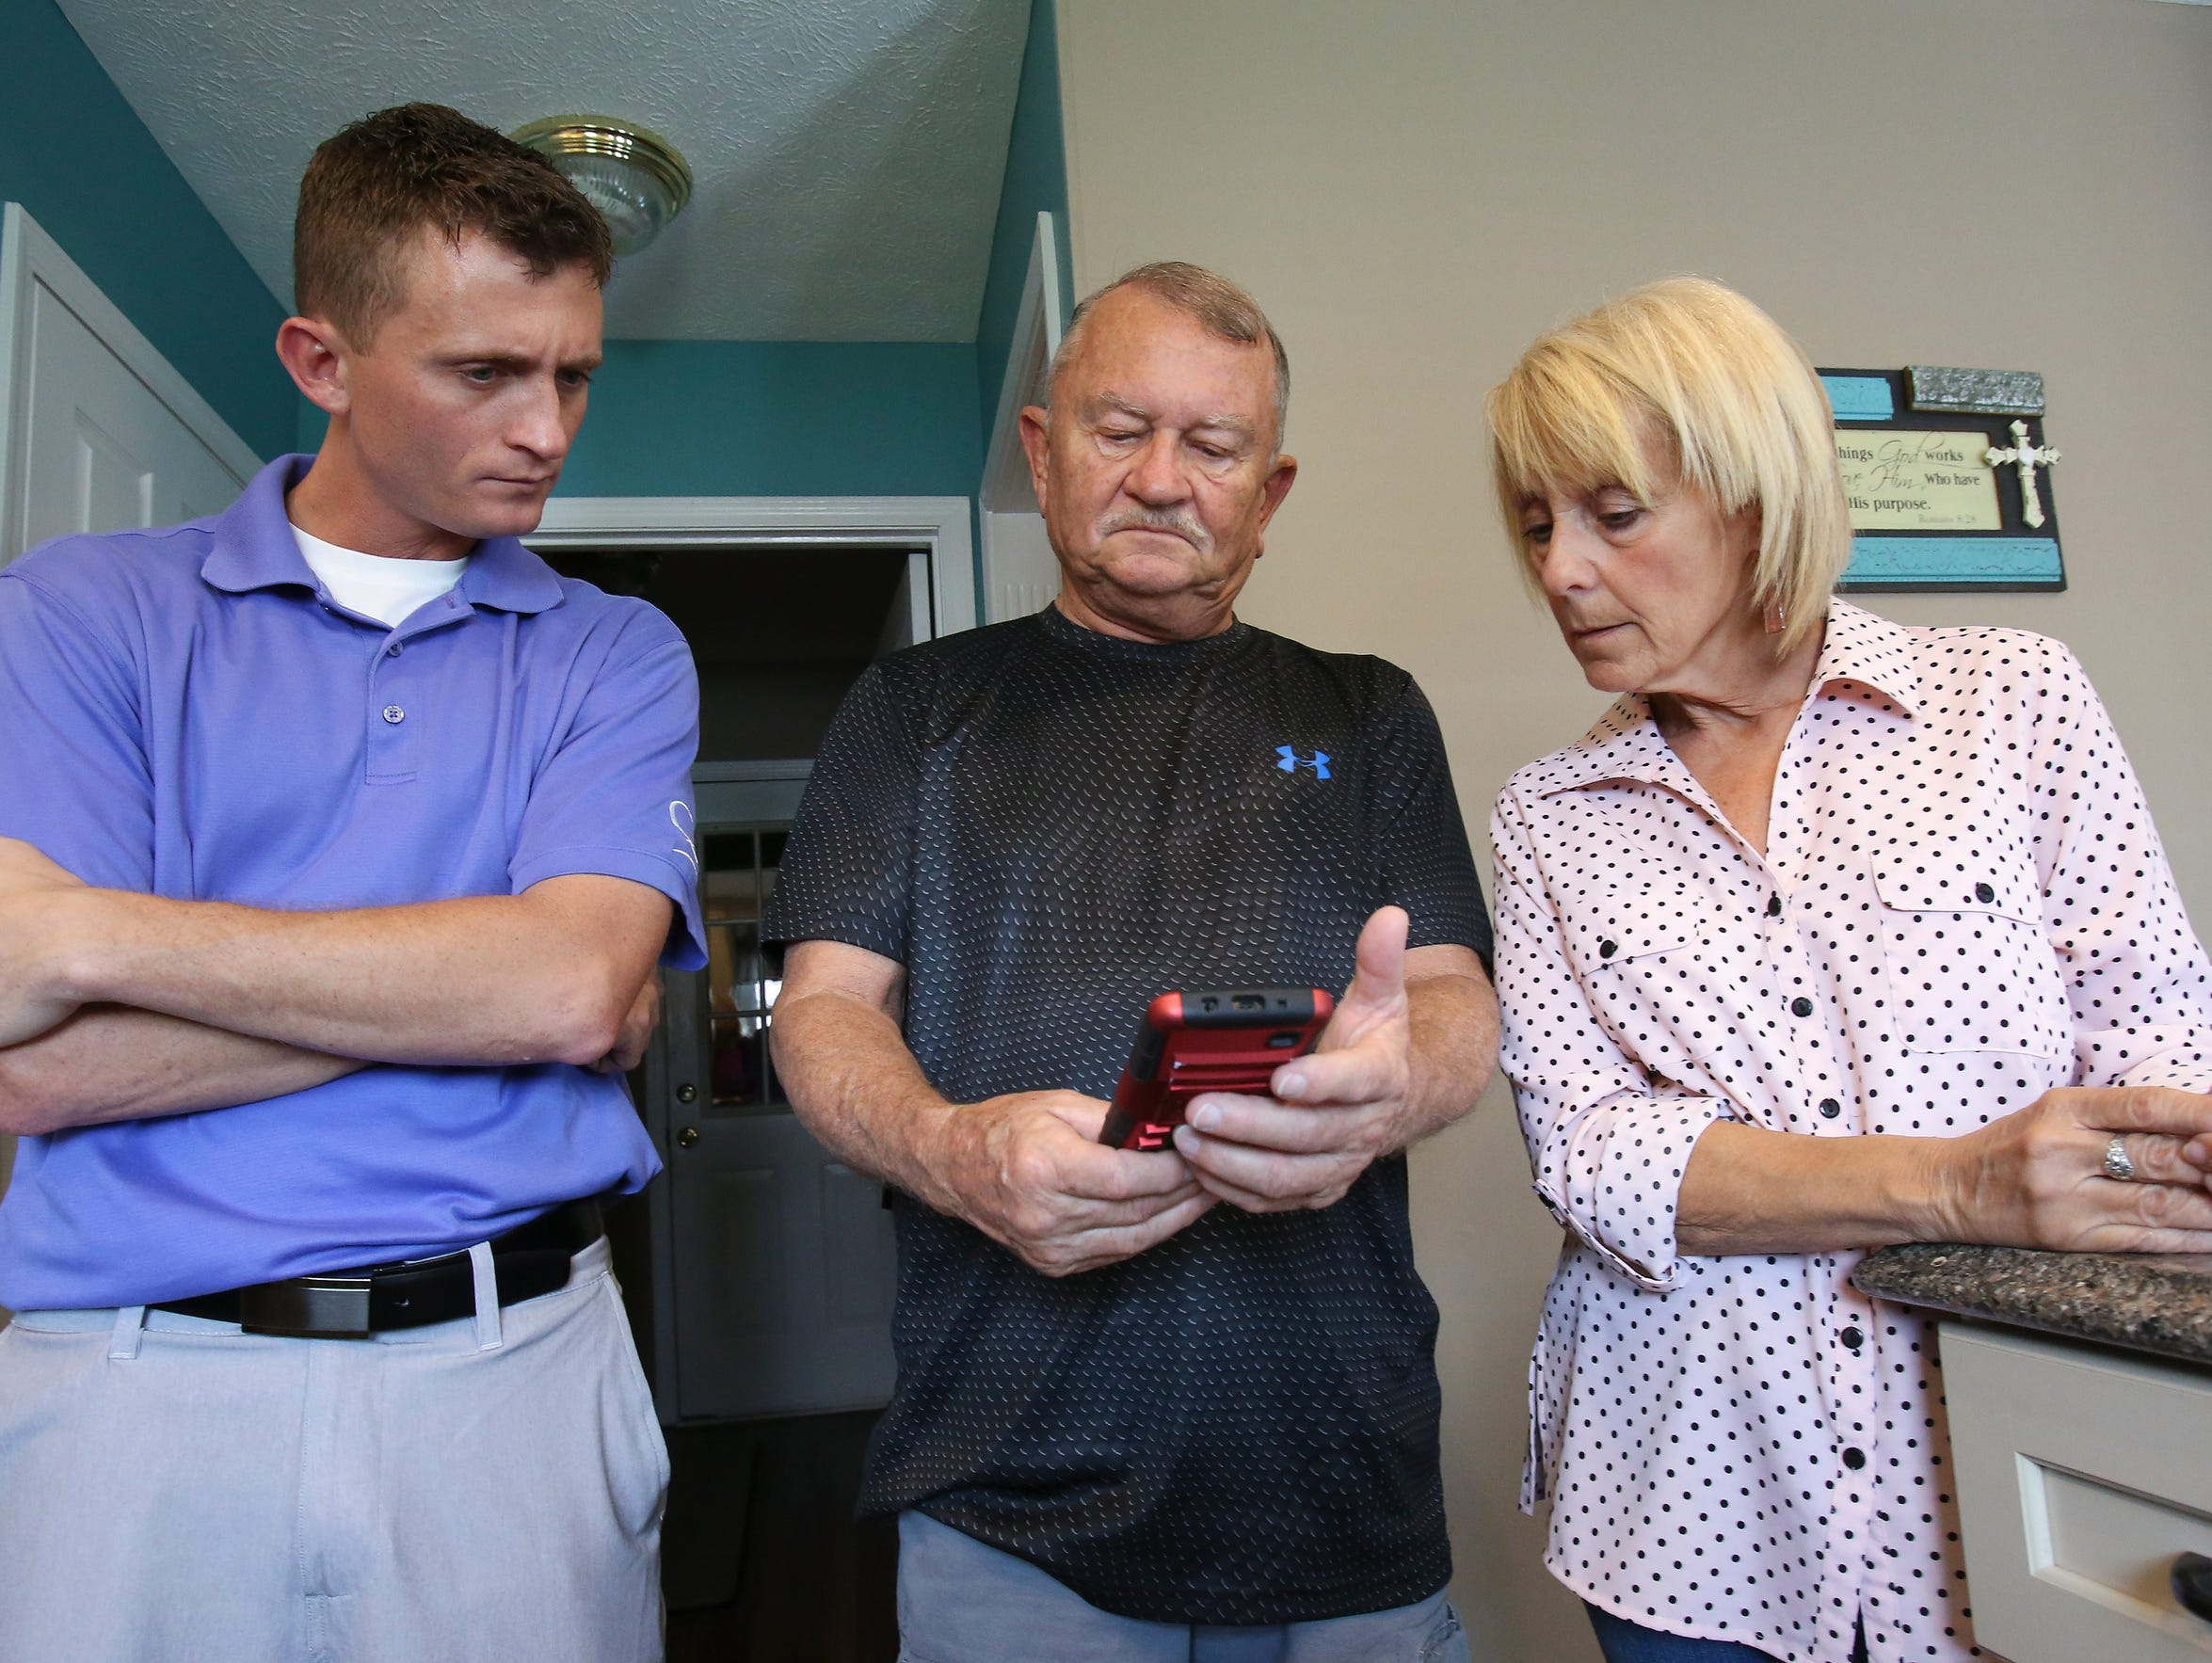 (L-R)  Aaron Cooley, 33, and his parents Karl Cooley